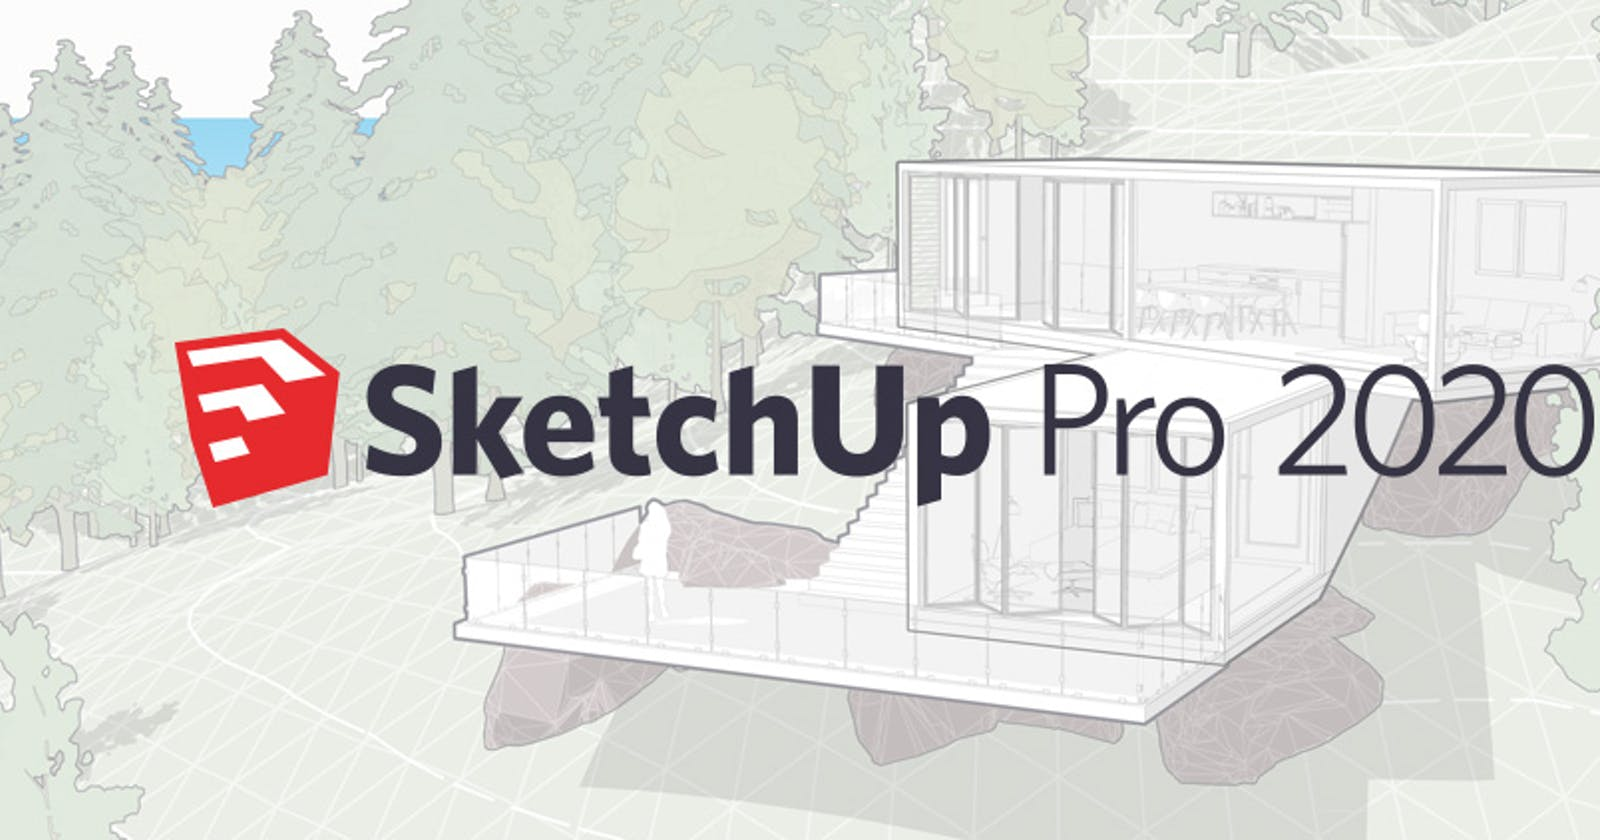 Re-packaging SketchUp 2019/2020 for MSIX in the Windows Store